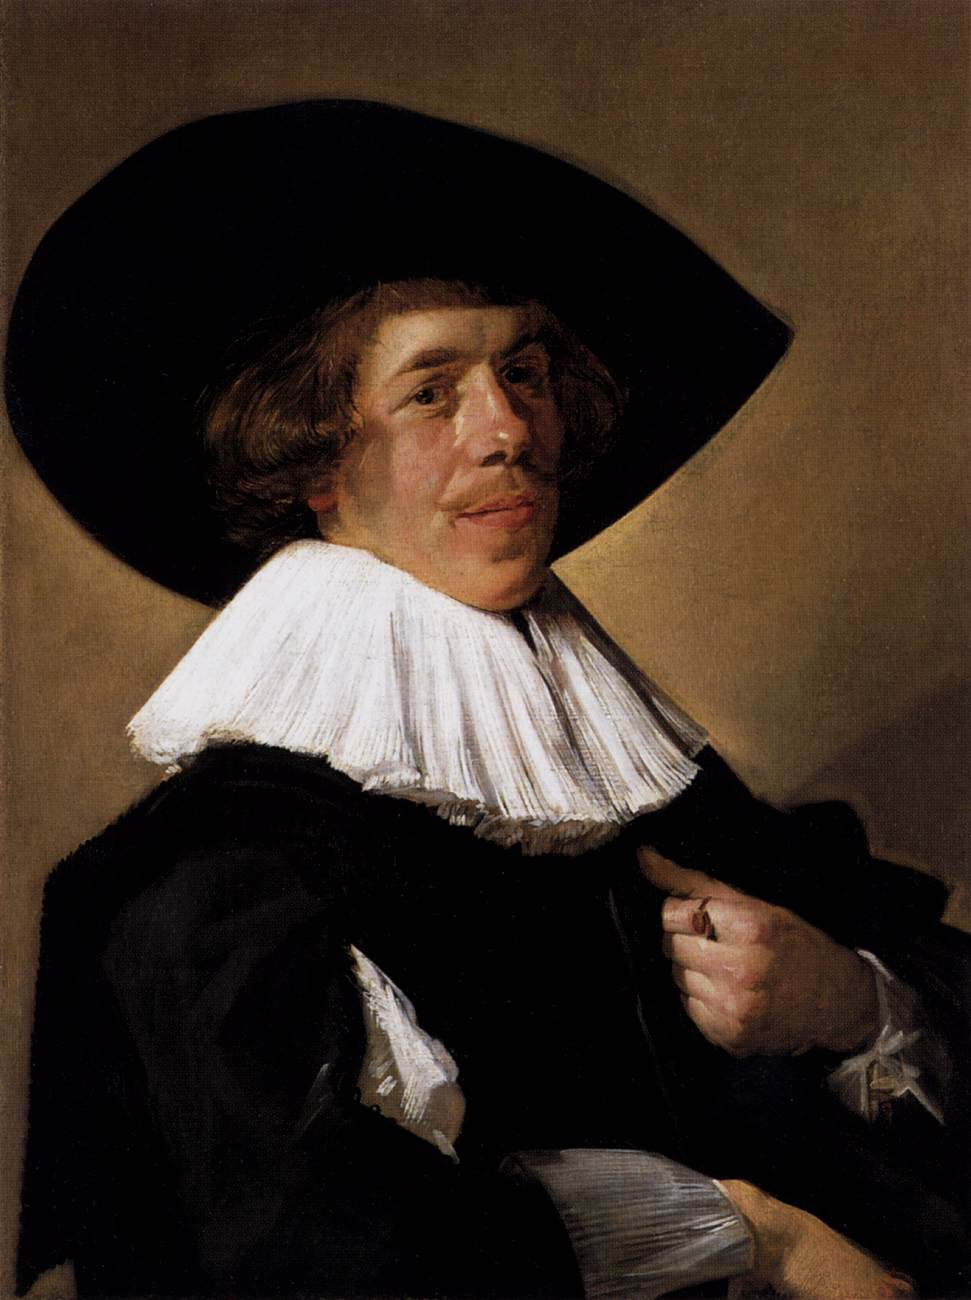 Frans_Hals_096_WGA_version.jpg